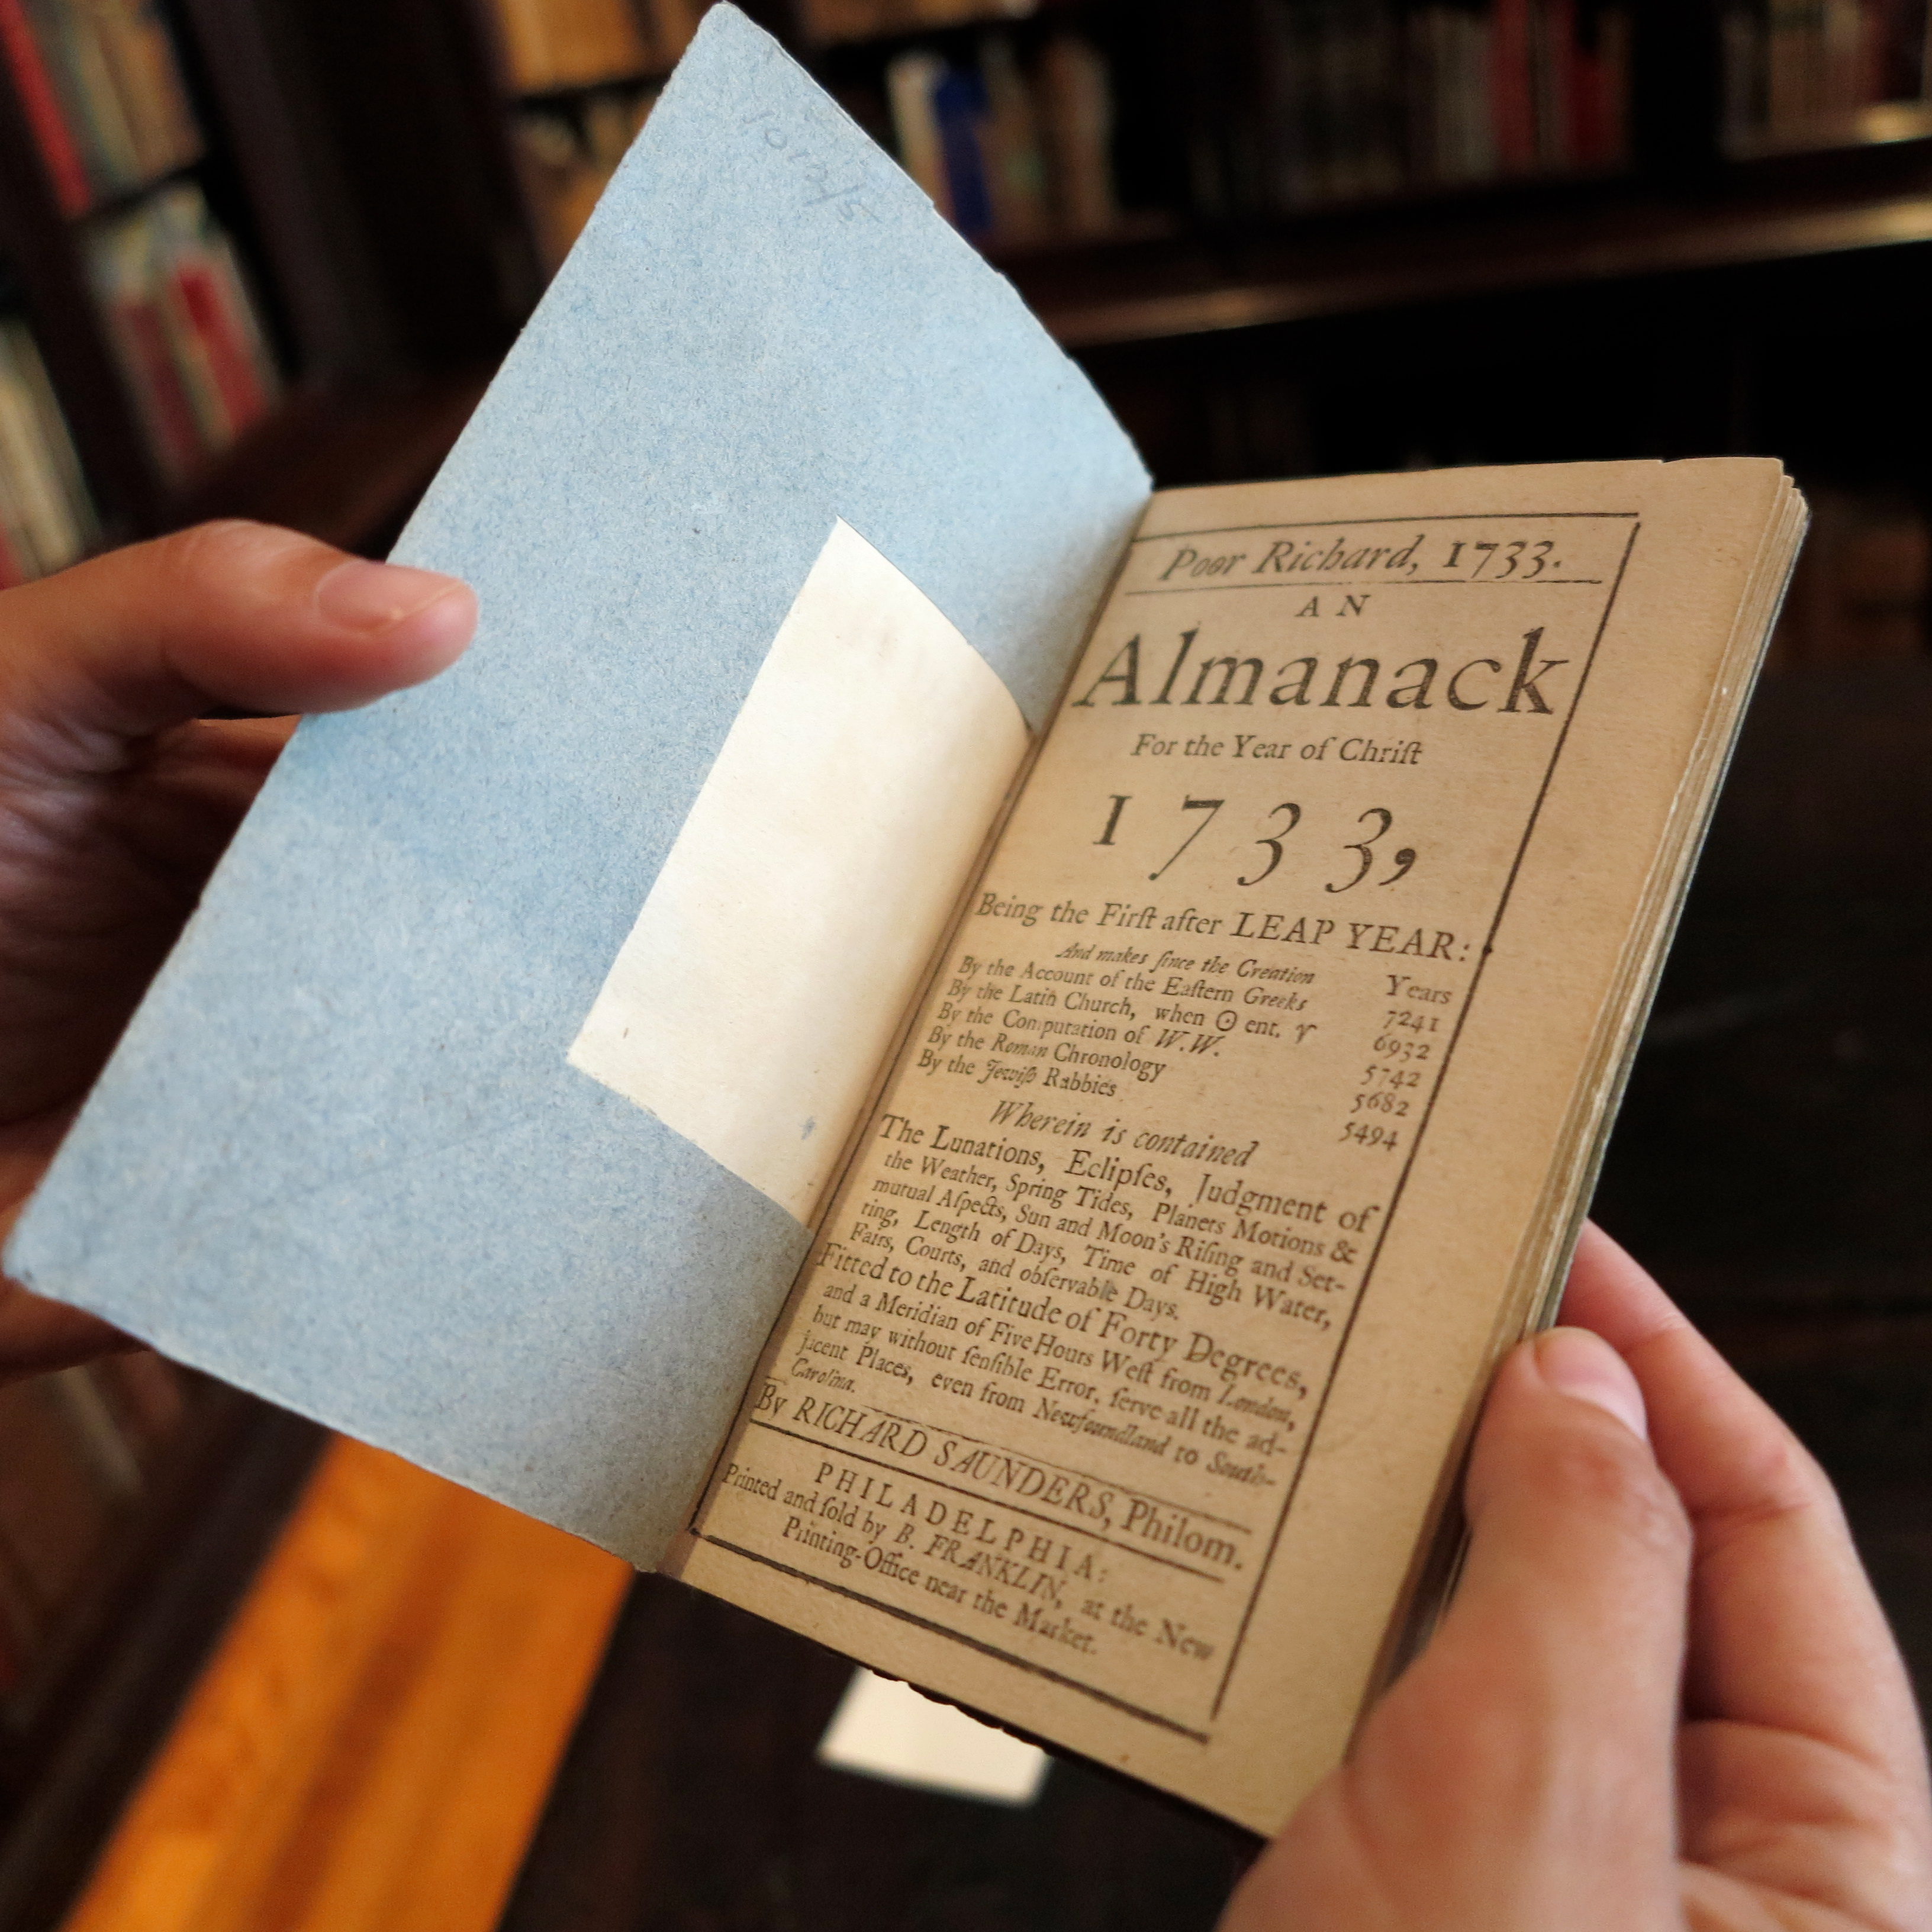 This is the 'Poor Richard's Almanack' for the year 1733, the only known copy.